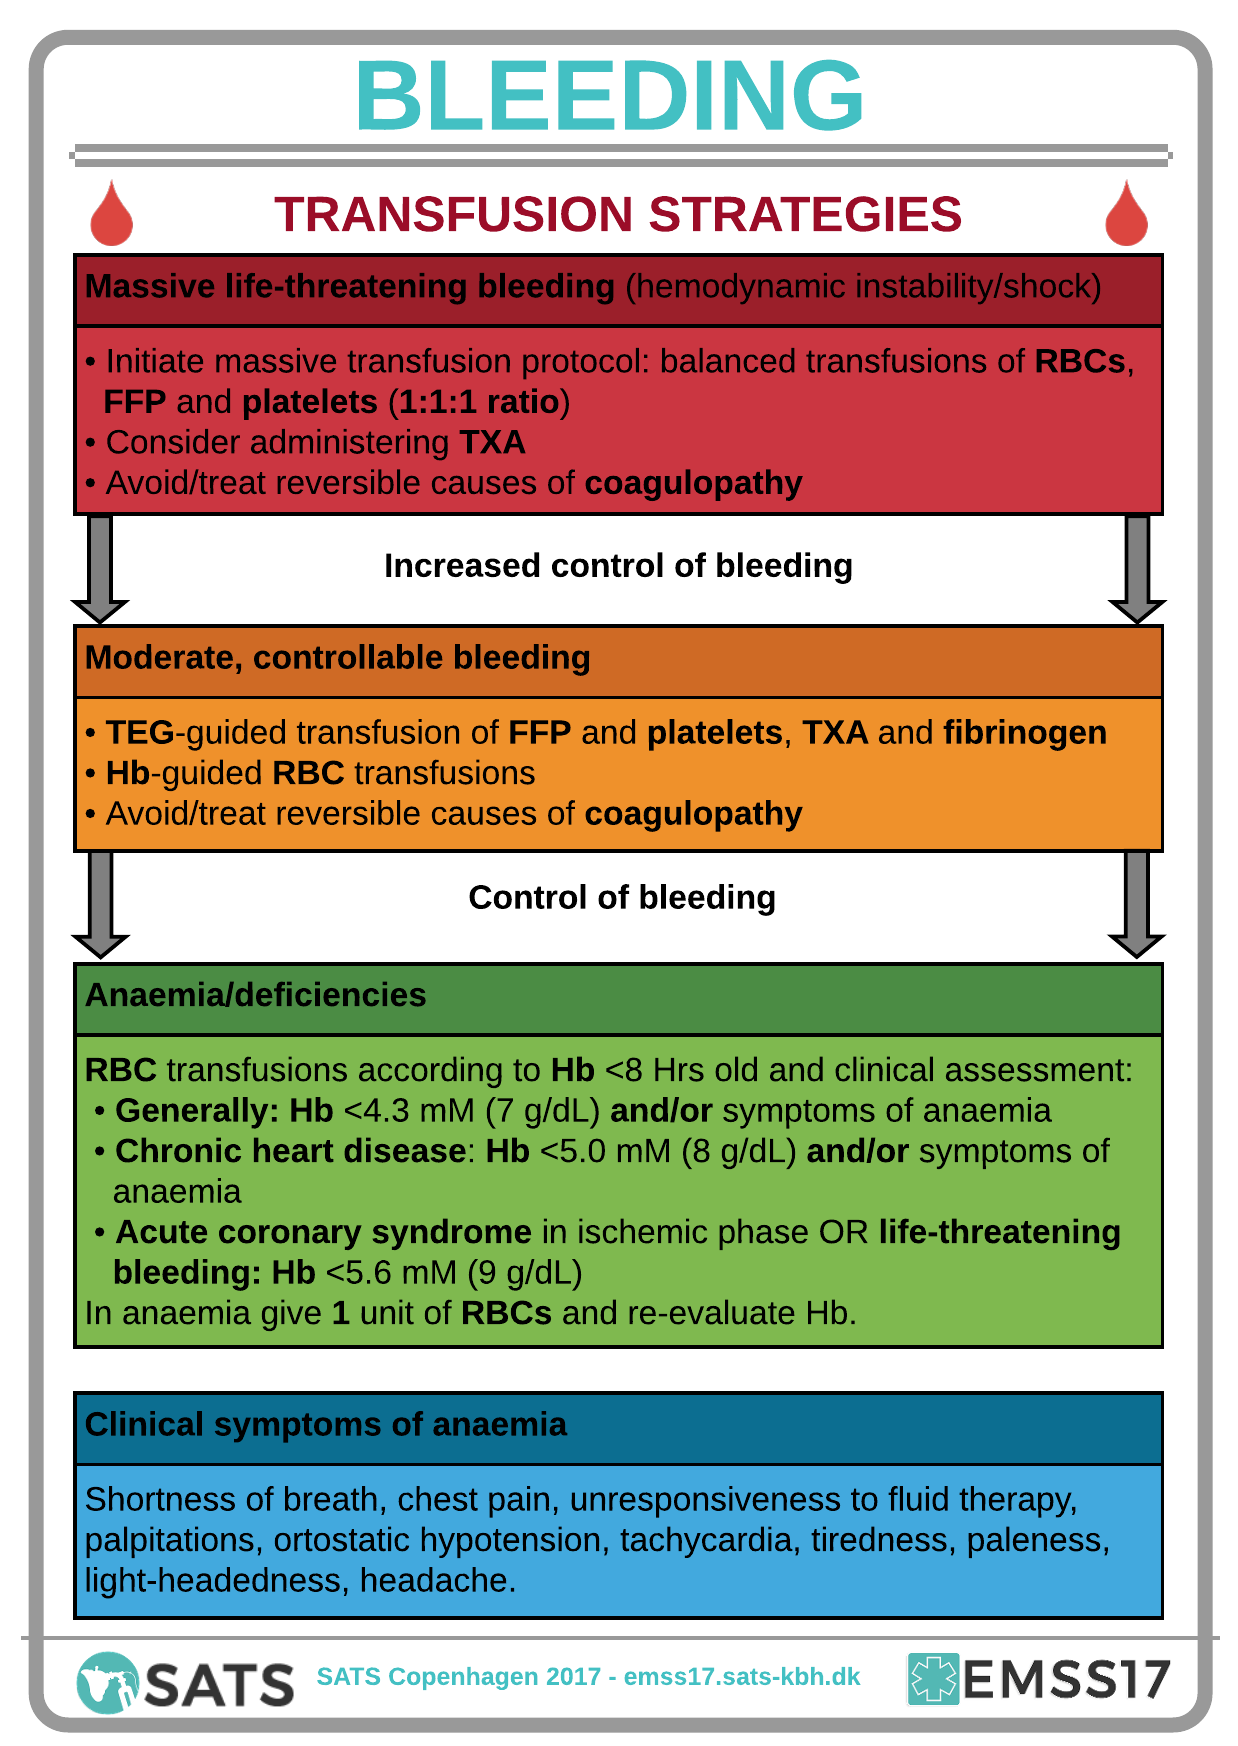 EMSS17 - Bleeding Patients - Pocket guide page 1